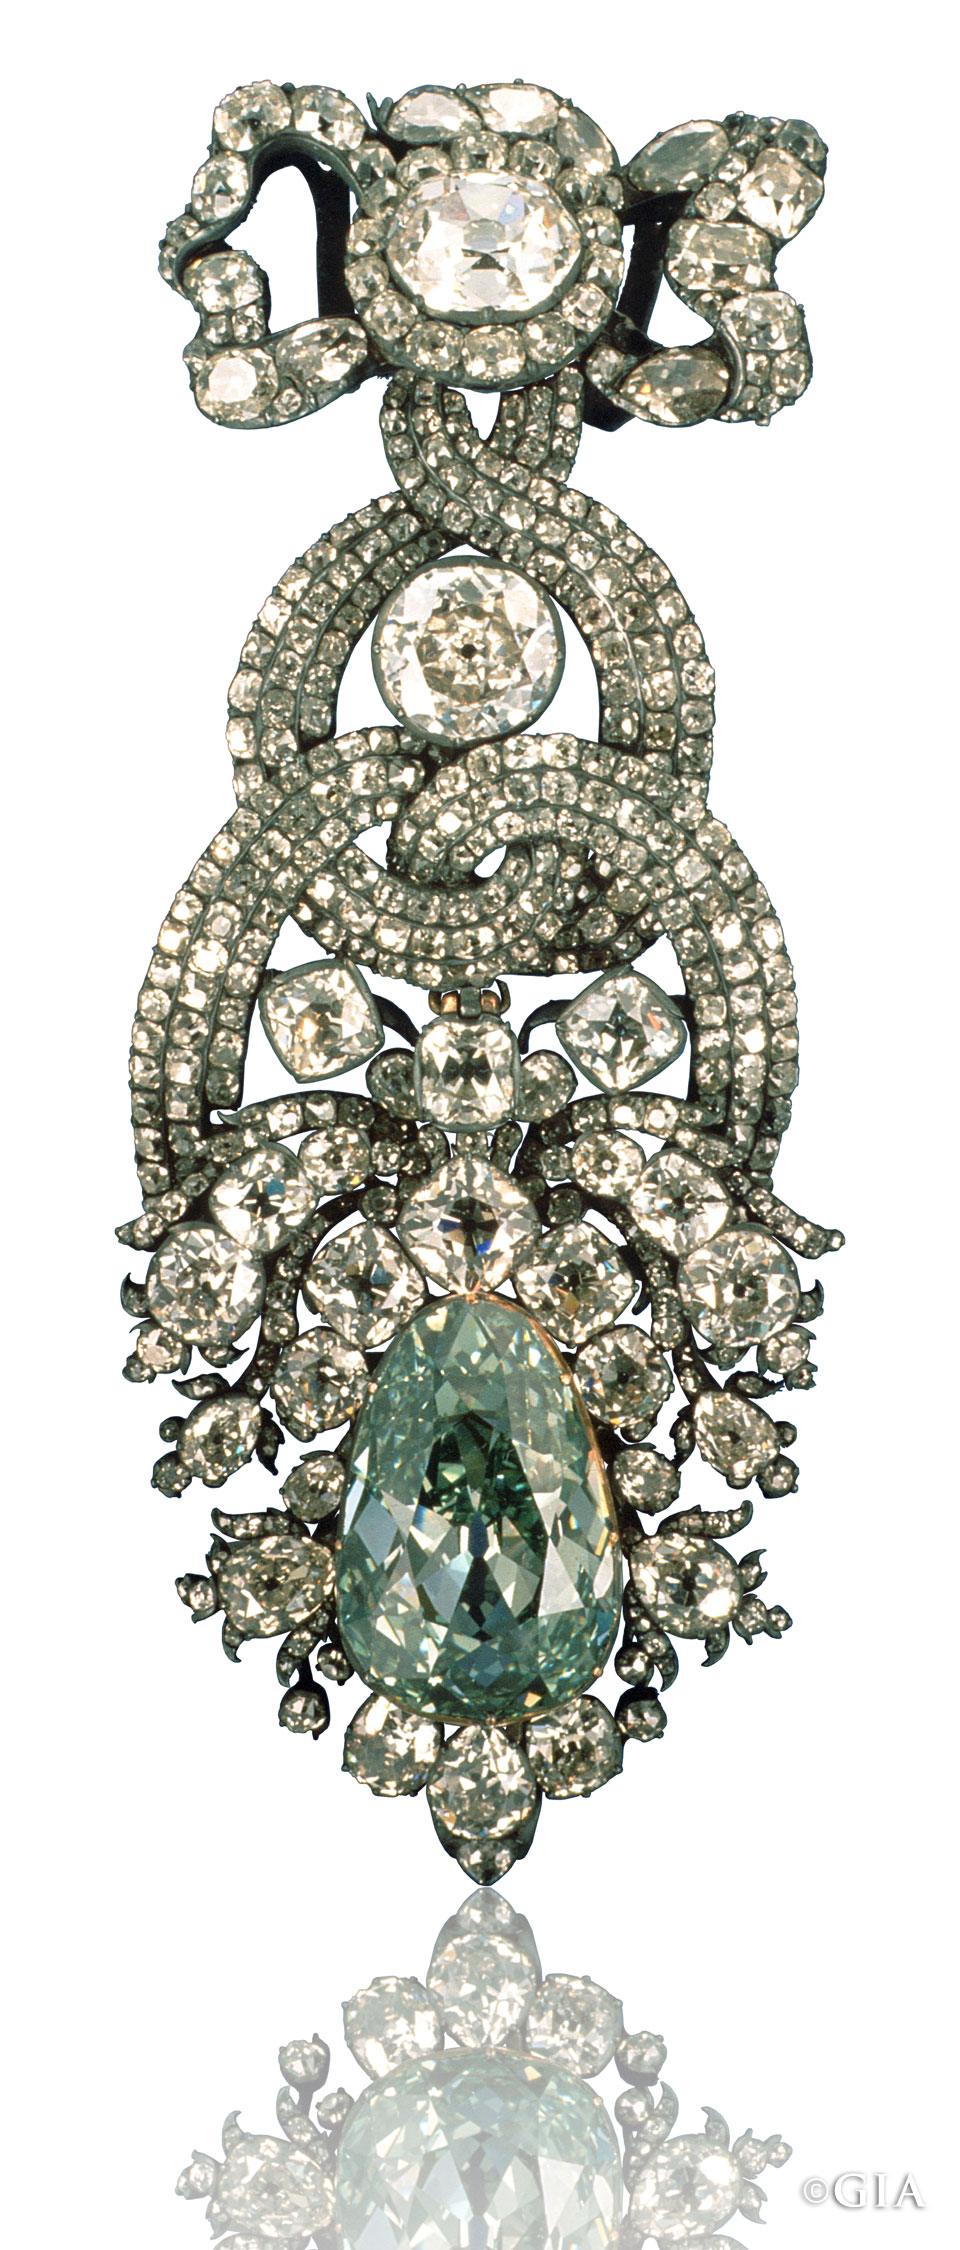 The most famous of all green diamonds is the legendary 'Dresden Green', a modified pear-shaped bluish apple-green diamond of 41.10 carats. Image: GIA